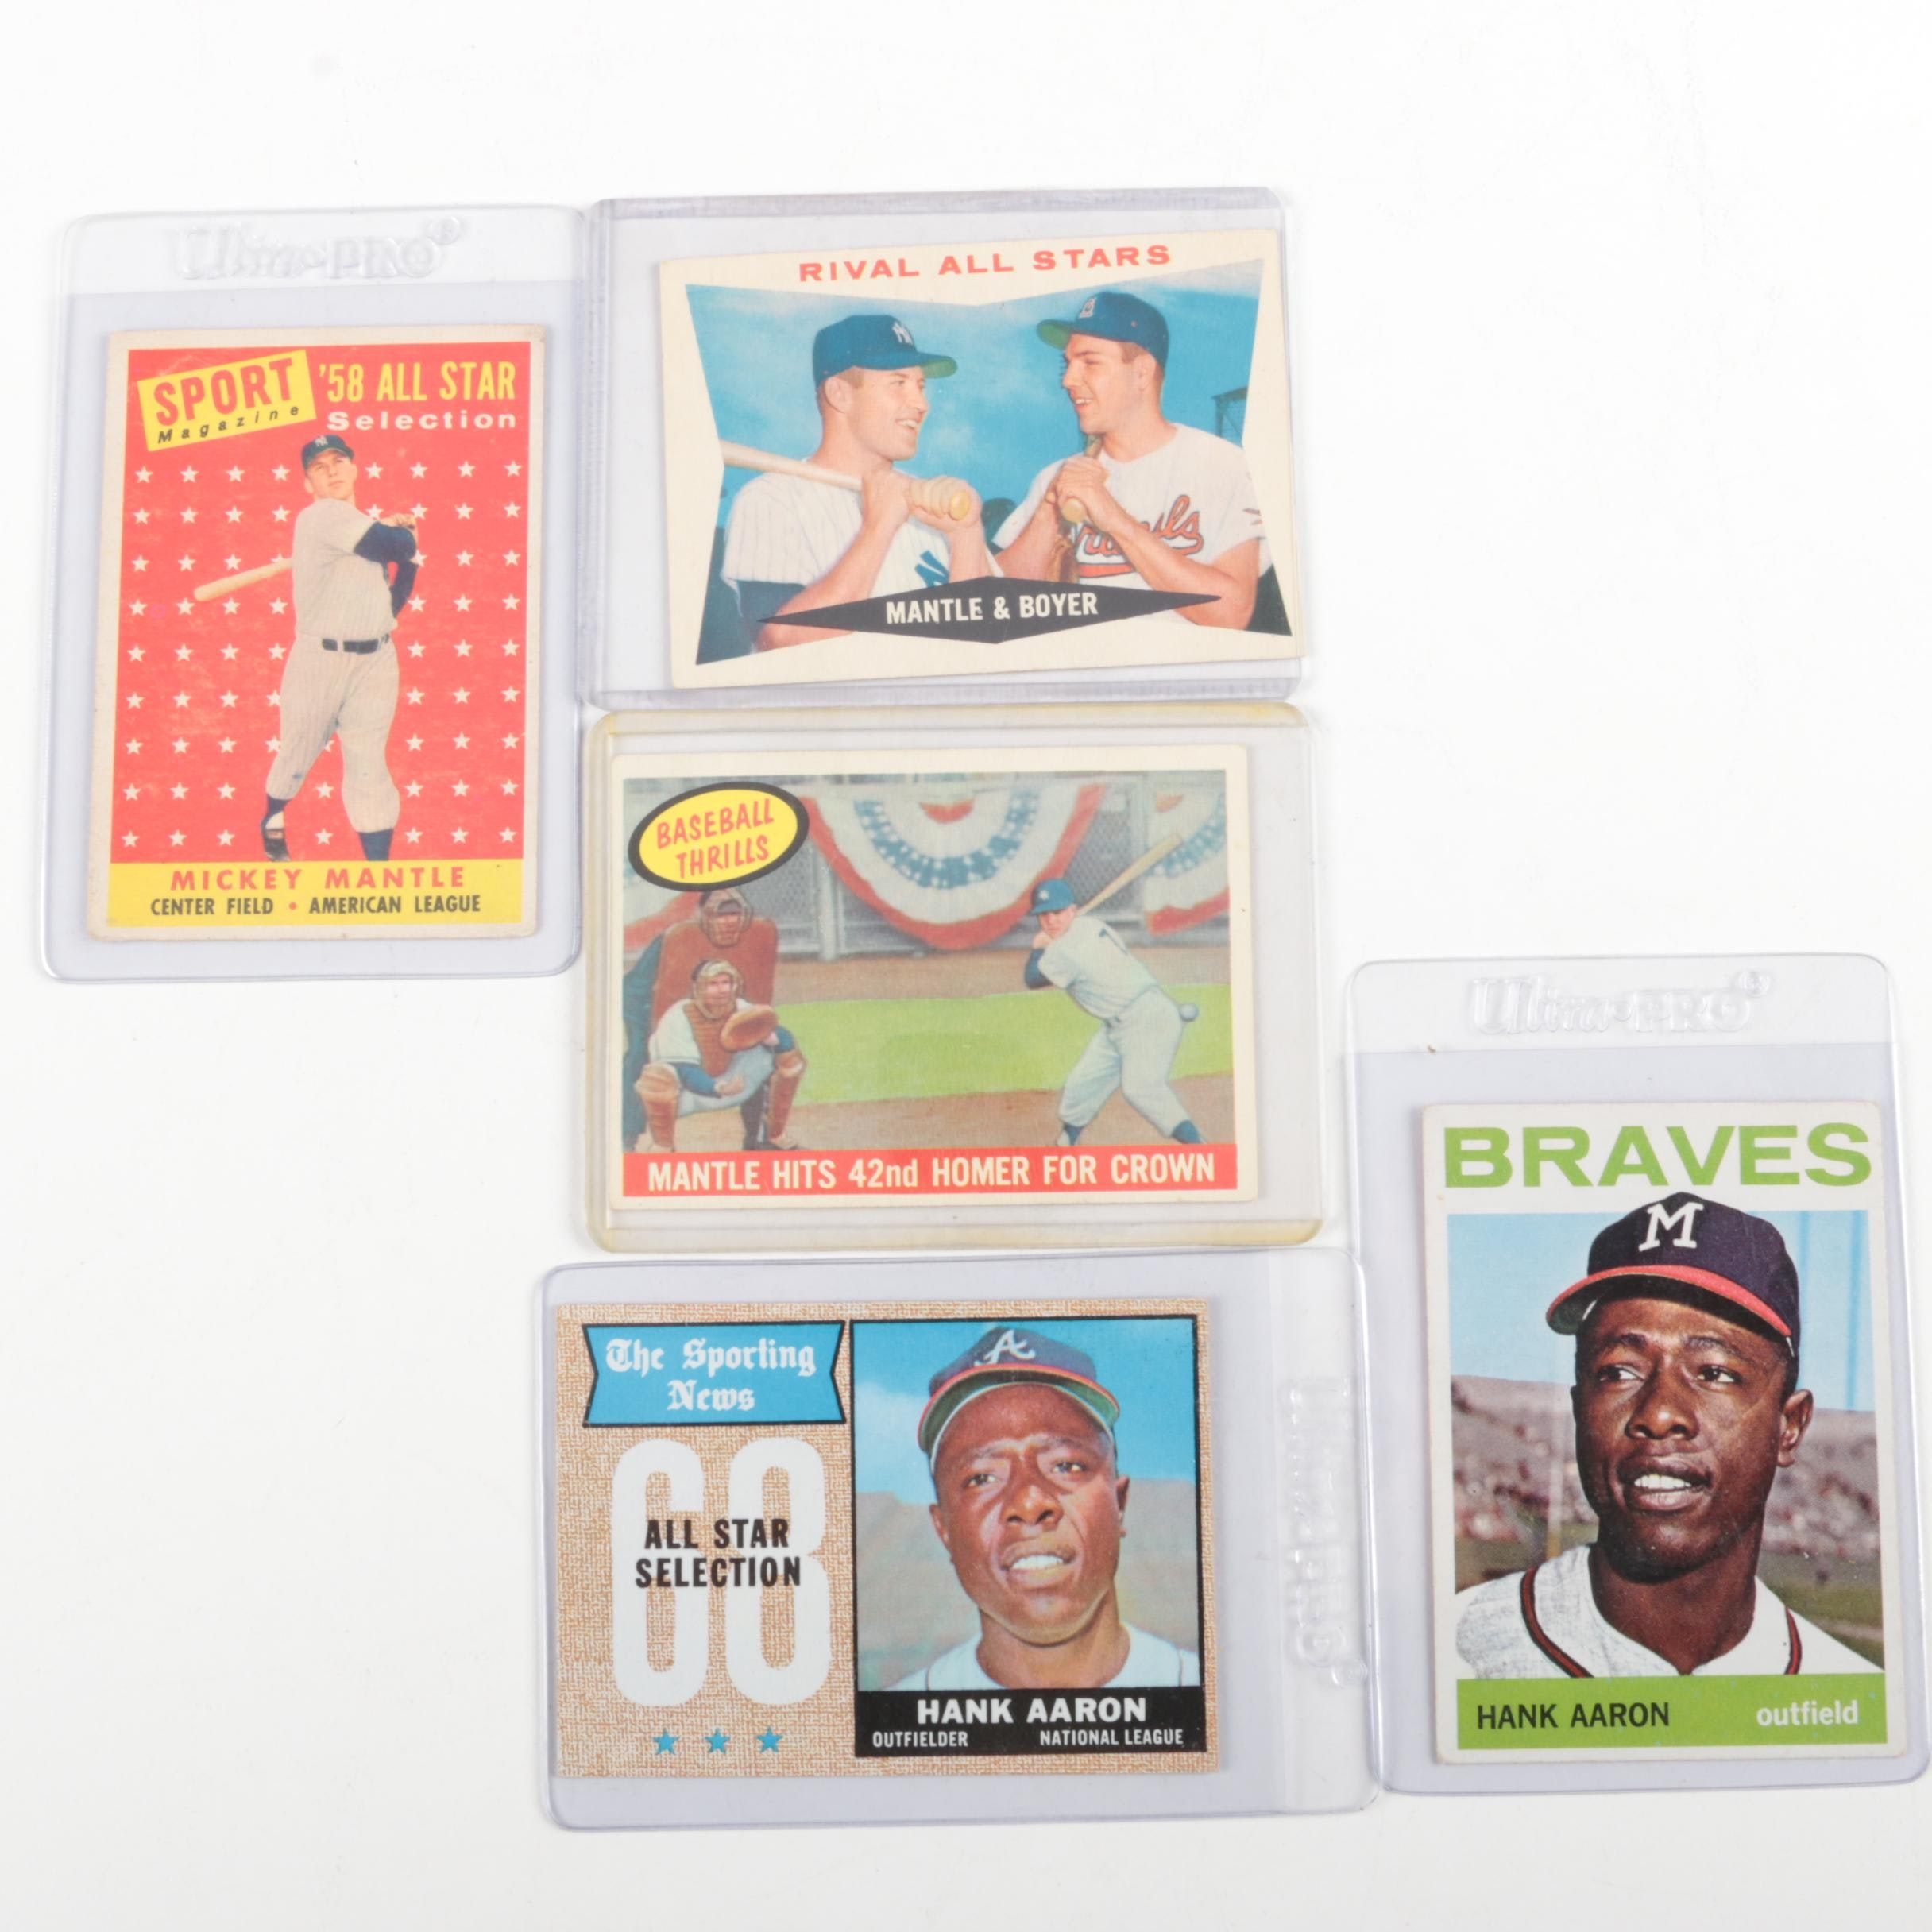 Five Baseball Cards from the 1960s Including Mantle and Aaron